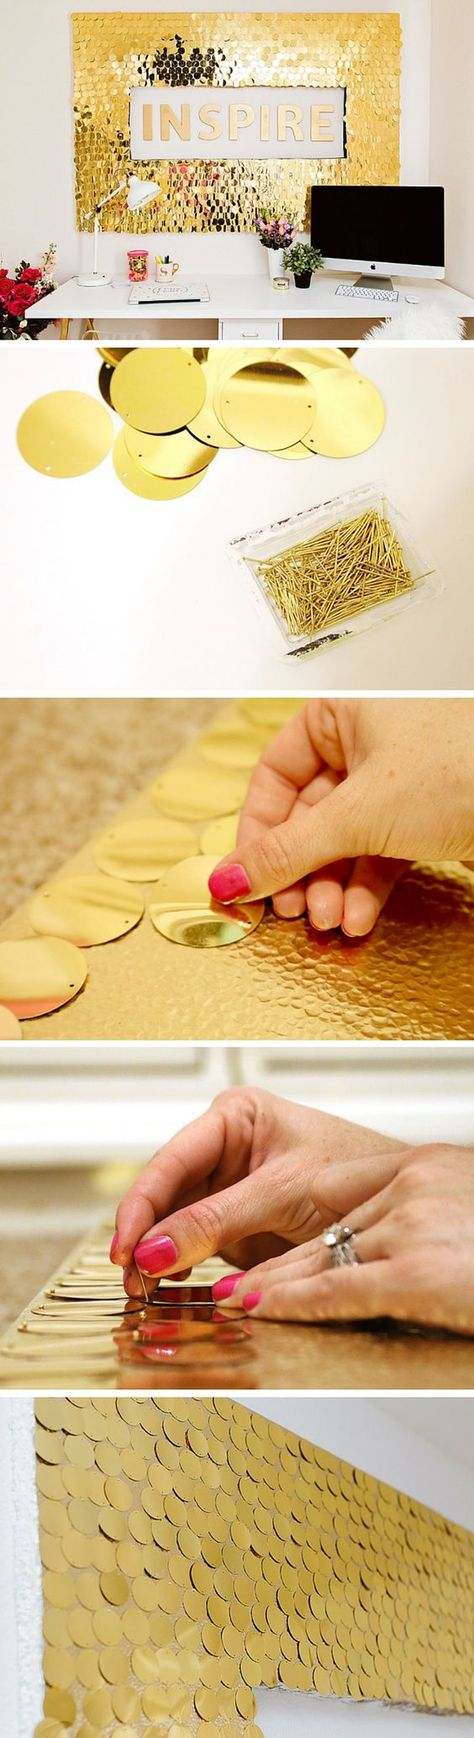 DIY Silhouette Wall Art | Crafts | Pinterest | Silhouettes, Walls ...